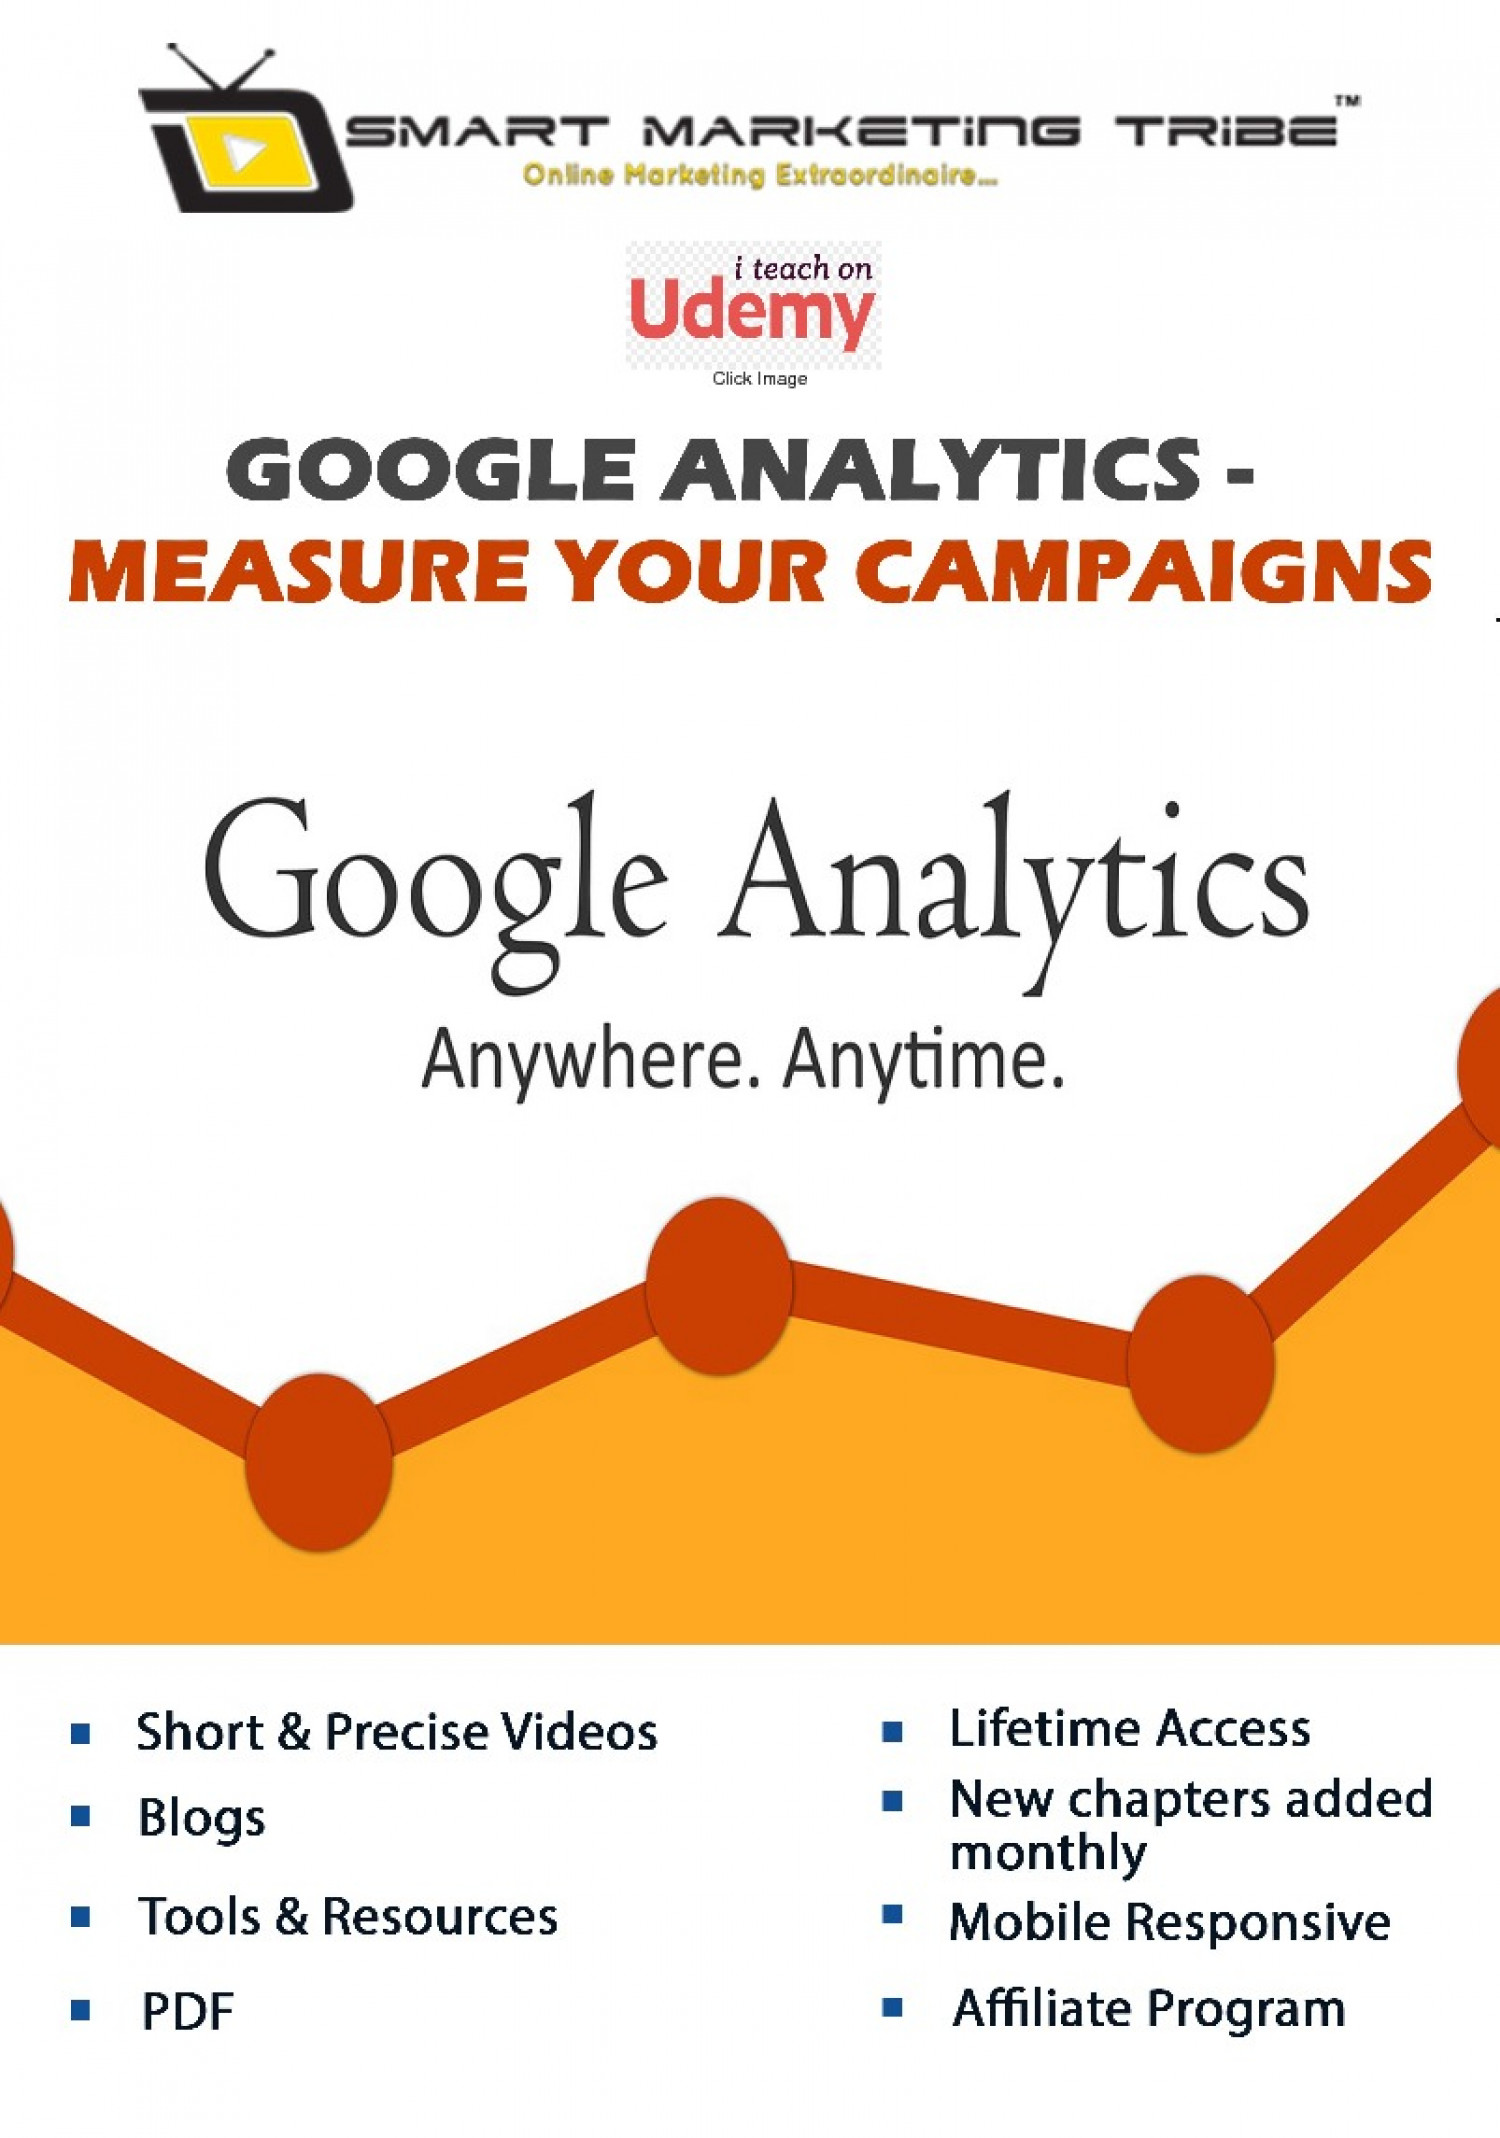 Google Analytics Infographic